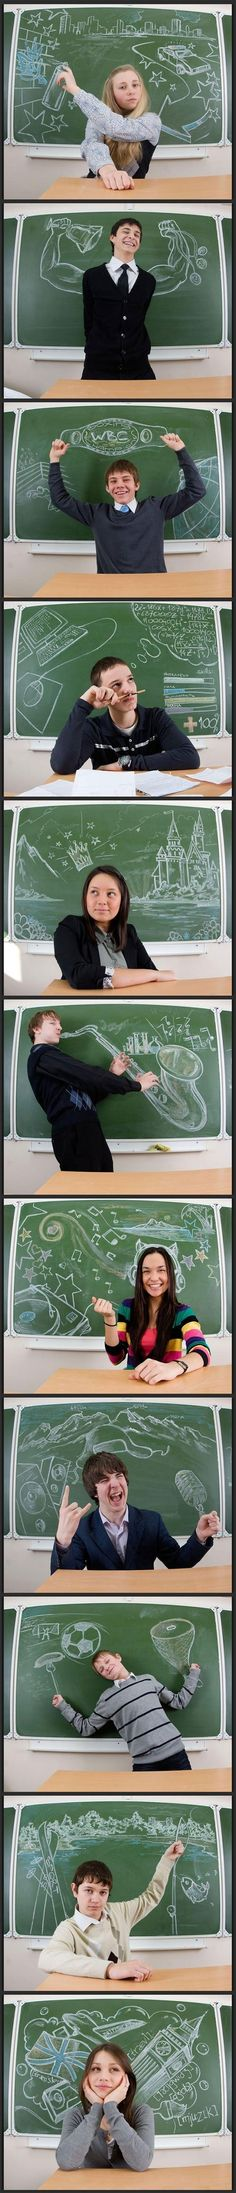 Gotta do this with my 8th graders at the end of the year. They can design their background on paper, use the document camera to transfer it to chalkboard.